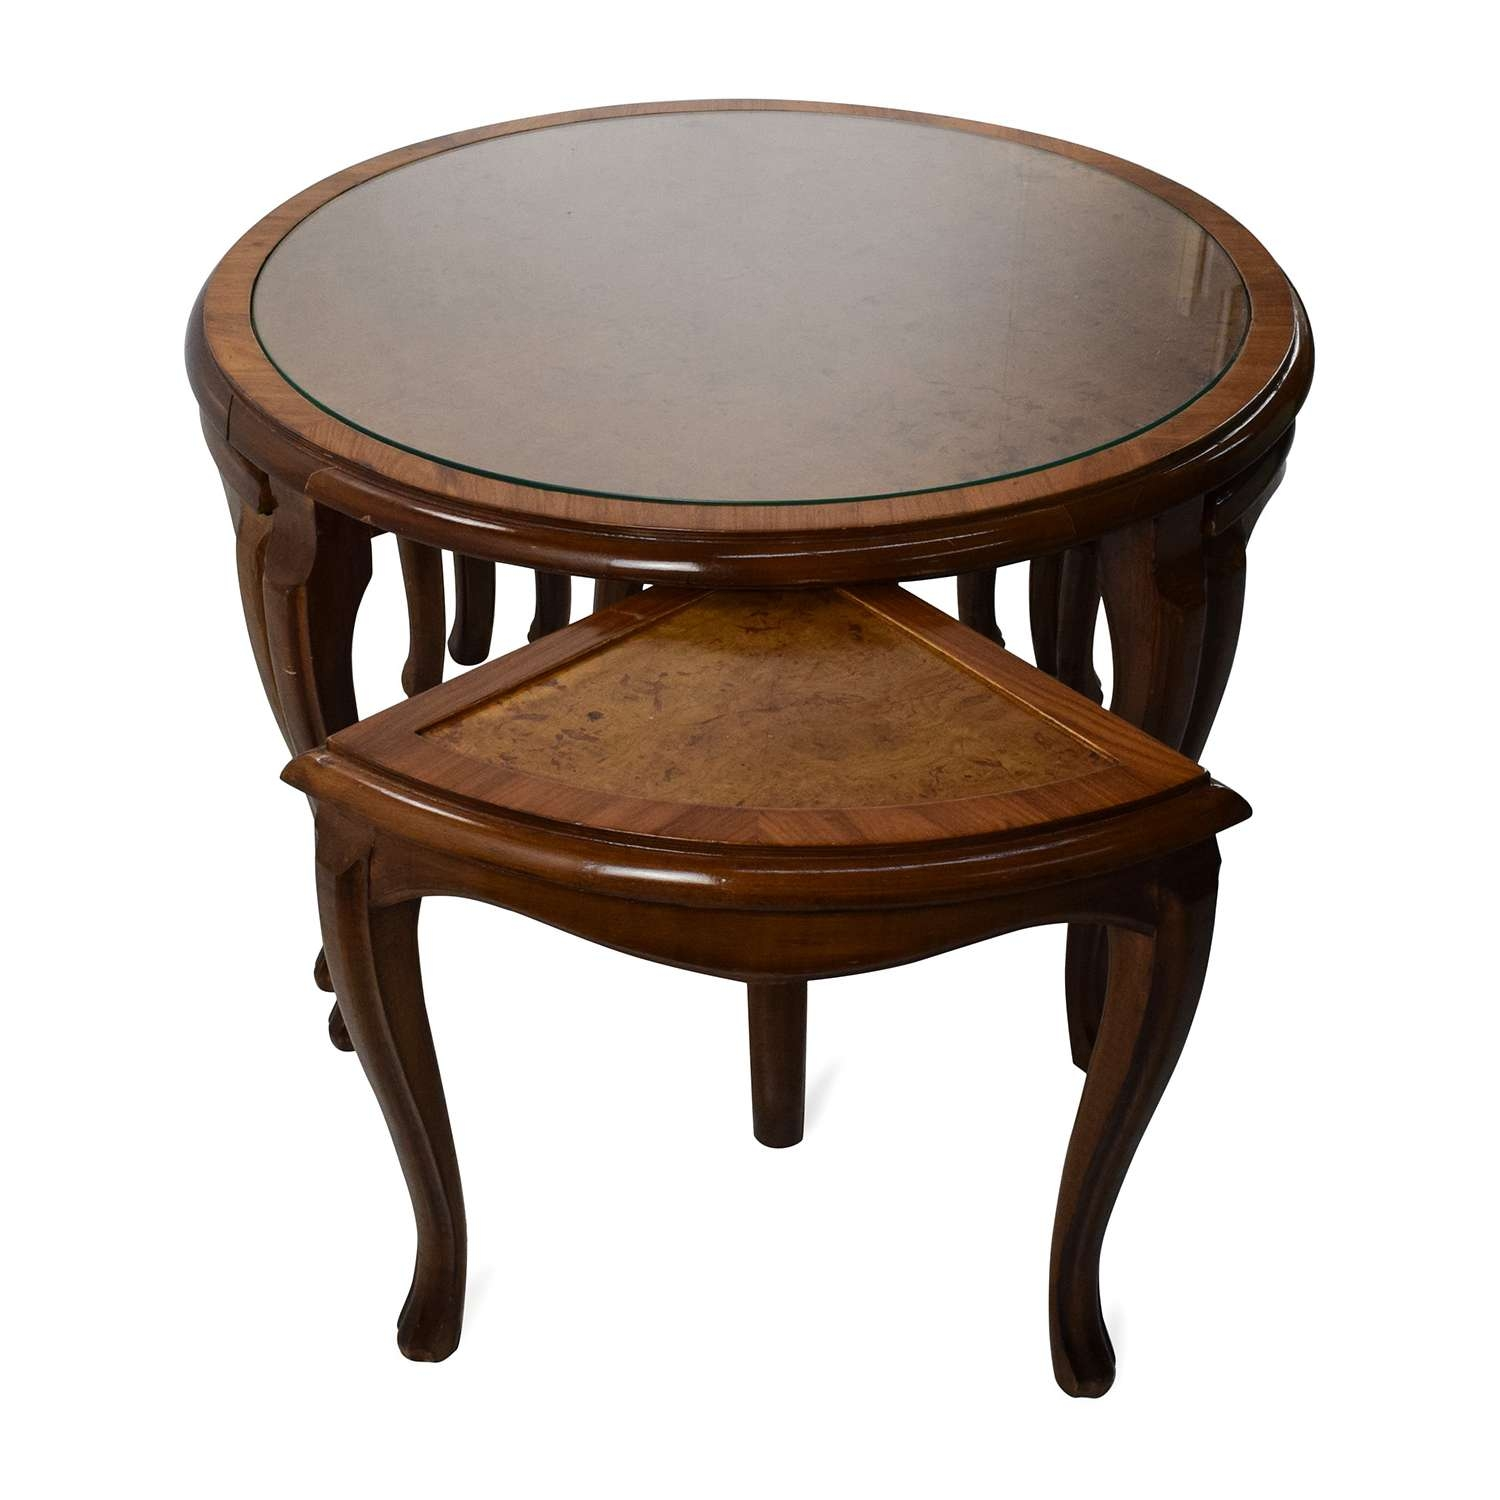 [%fashionable Coffee Tables With Nesting Stools Inside 69% Off – Round Glass Top Coffee Table With 4 Nesting Stools / Tables|69% Off – Round Glass Top Coffee Table With 4 Nesting Stools / Tables In Most Up To Date Coffee Tables With Nesting Stools%] (View 18 of 20)